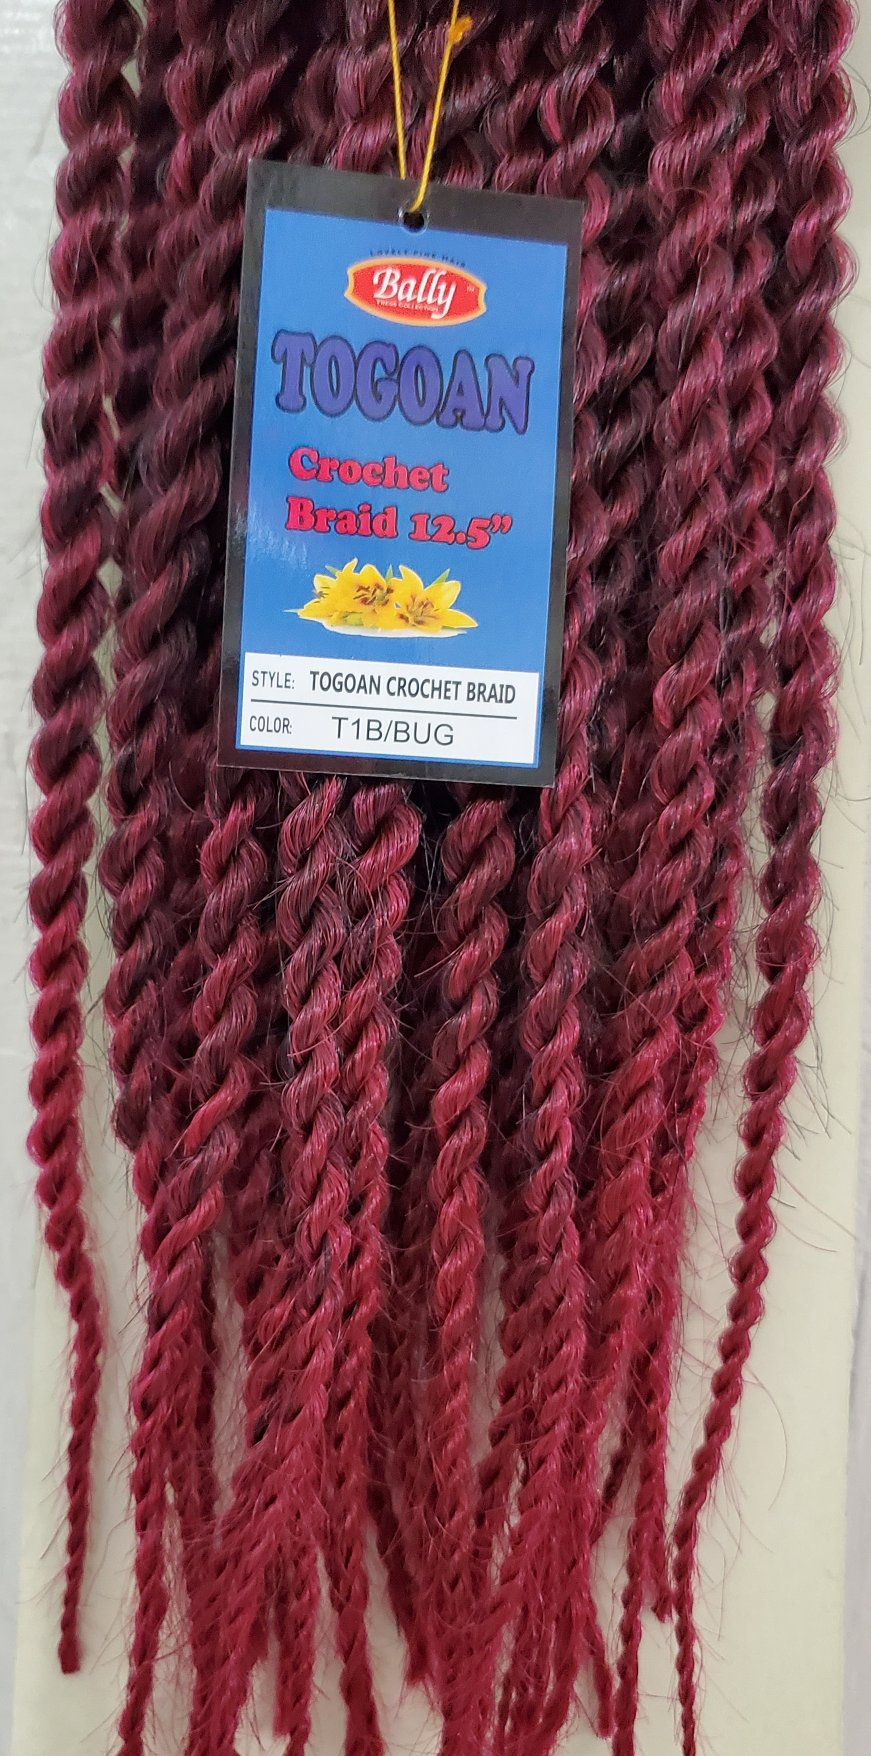 Togoan Crochet Braid 22.5